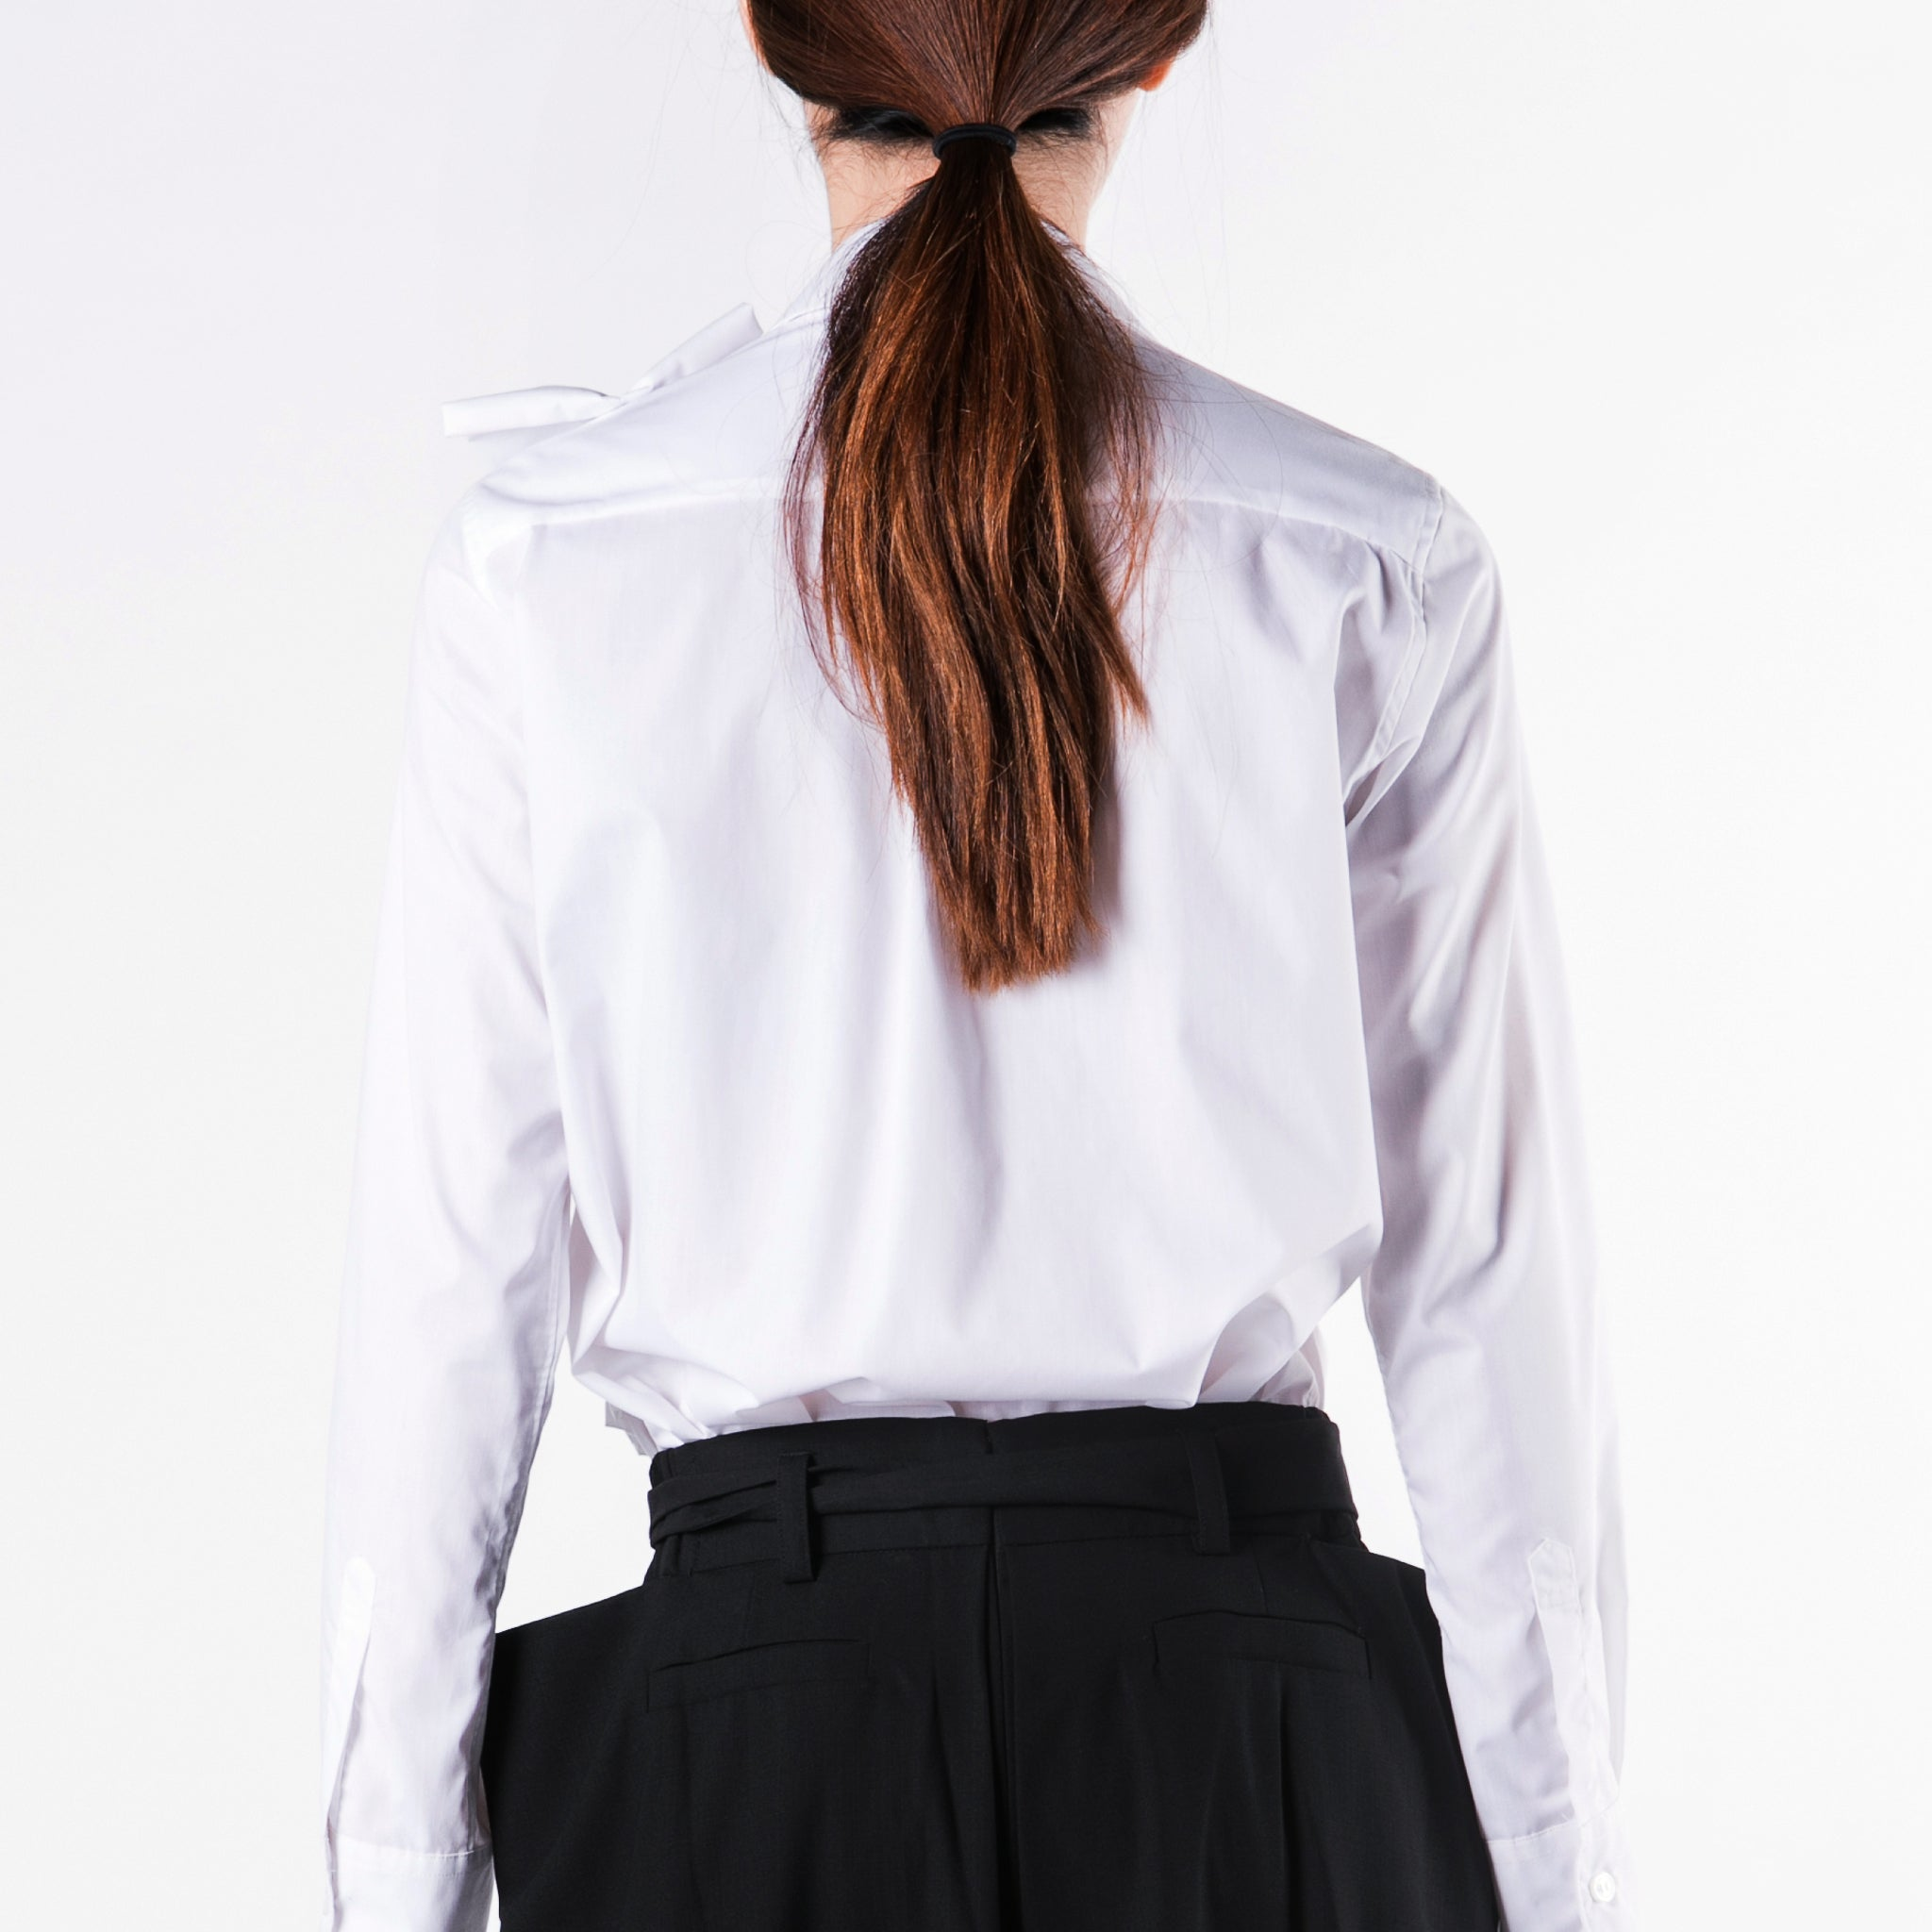 Blouse Ruffle Left - phenotypsetter, fashion designer label, unisex, women, accessories